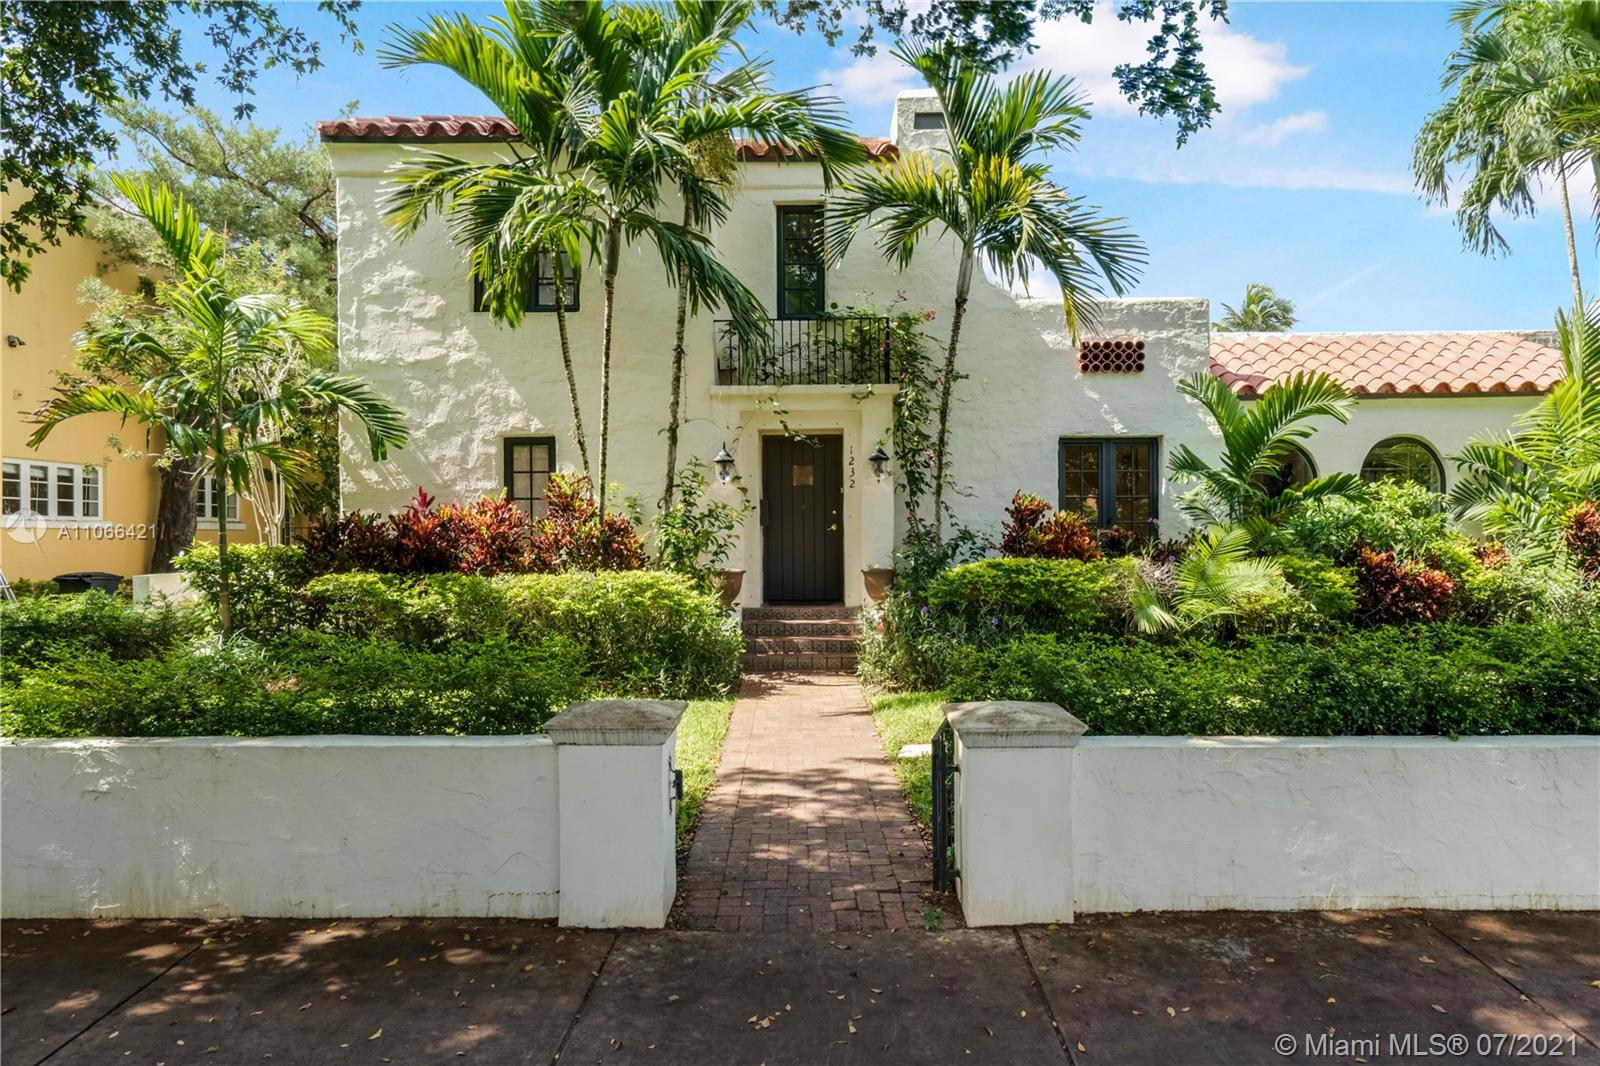 Exquisite elegance and charm define this renovated old Spanish house sitting on an almost 13,000 SF lot with tons of curb appeal and a beautiful back yard to enjoy Miami's lifestyle! Split floor plan with 4bedrooms / 3 bathrooms on one side of the house and another second master suite or large family room/guest suite on the other side of the house.  All bedrooms have plenty of closet space and extra living spaces, perfect for today's lifestyle with the rise of the home office. Hardwood floors throughout most of the house, gas stove, fireplace, impact windows with beautiful views onto a stone patio and gorgeous pool area.  Kitchen and bathrooms were recently updated. Great location next to the best tennis in Miami, the Biltmore, the Golf course, the Venetian pool and top rated schools.